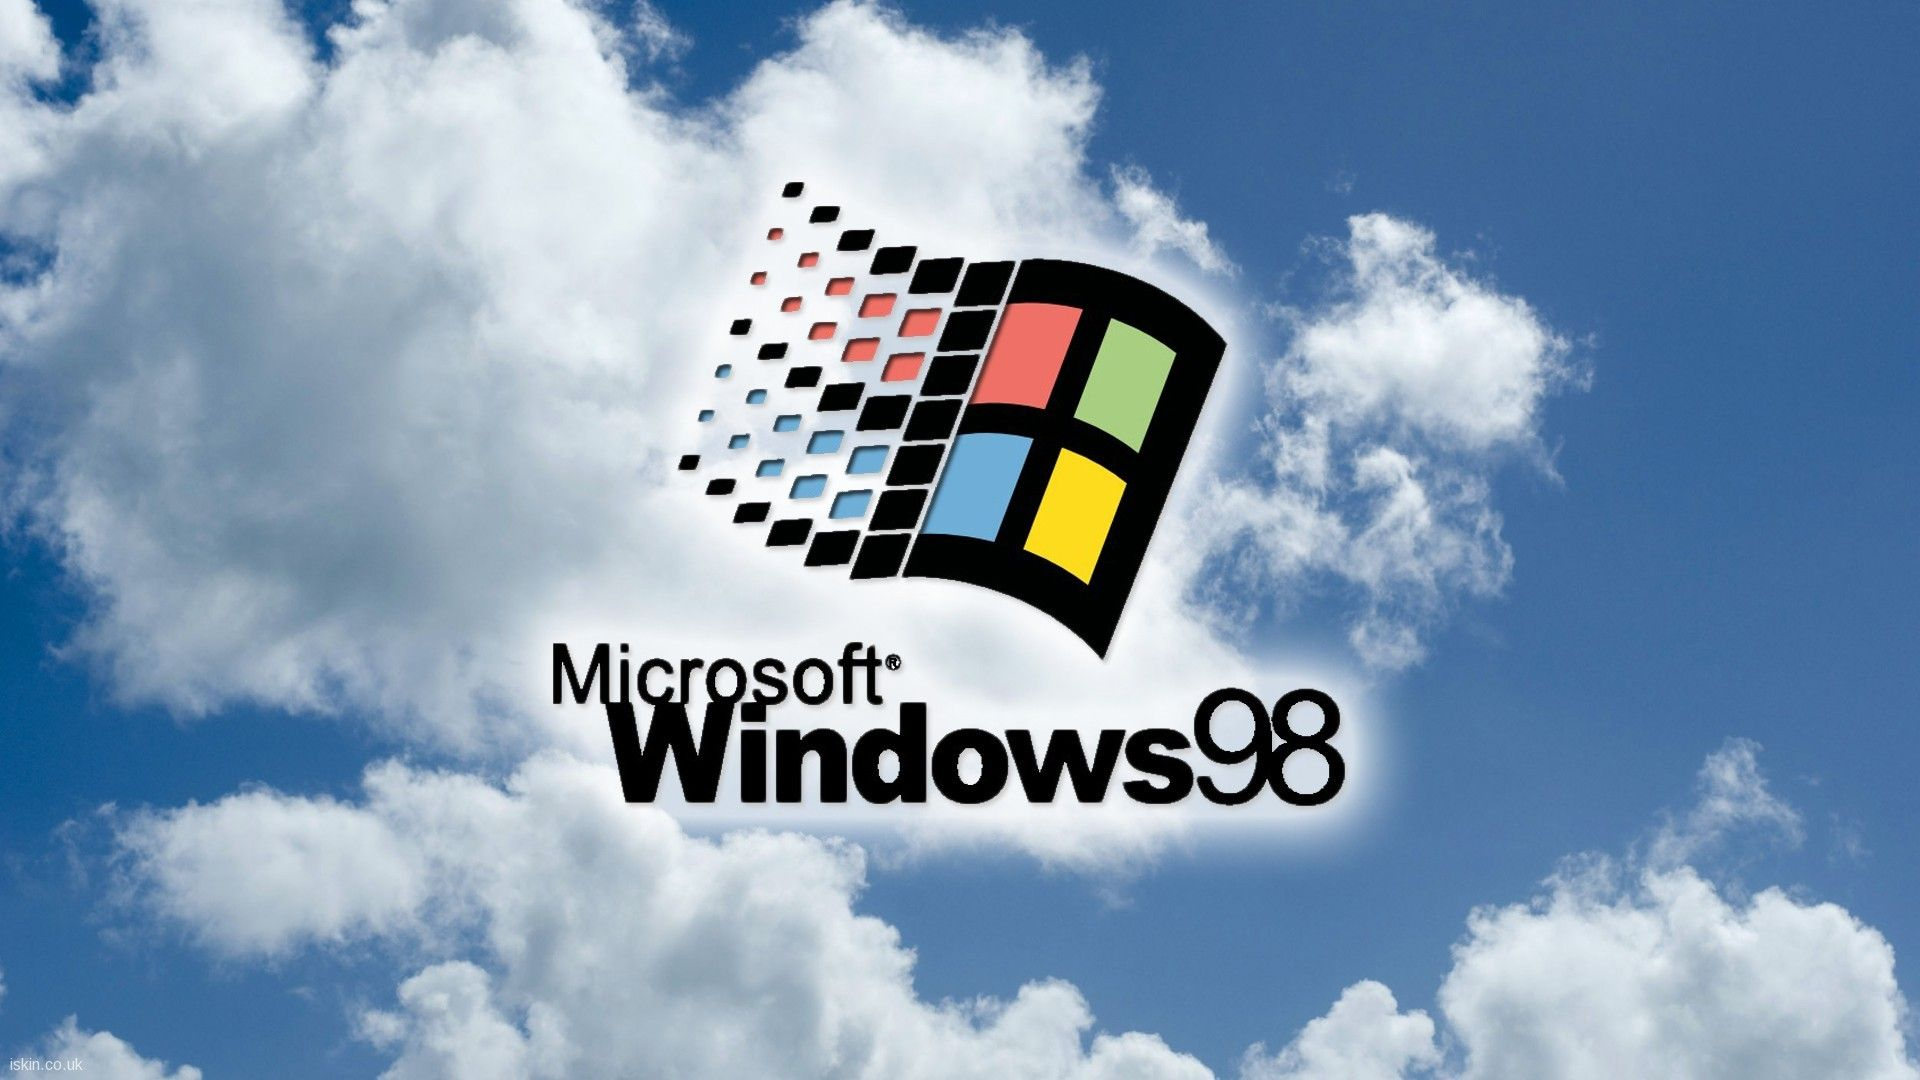 Computer 90s Microsoft Windows Vintage Windows 98 Wallpaper Desktop Wallpaper Art Microsoft Wallpaper Aesthetic Desktop Wallpaper